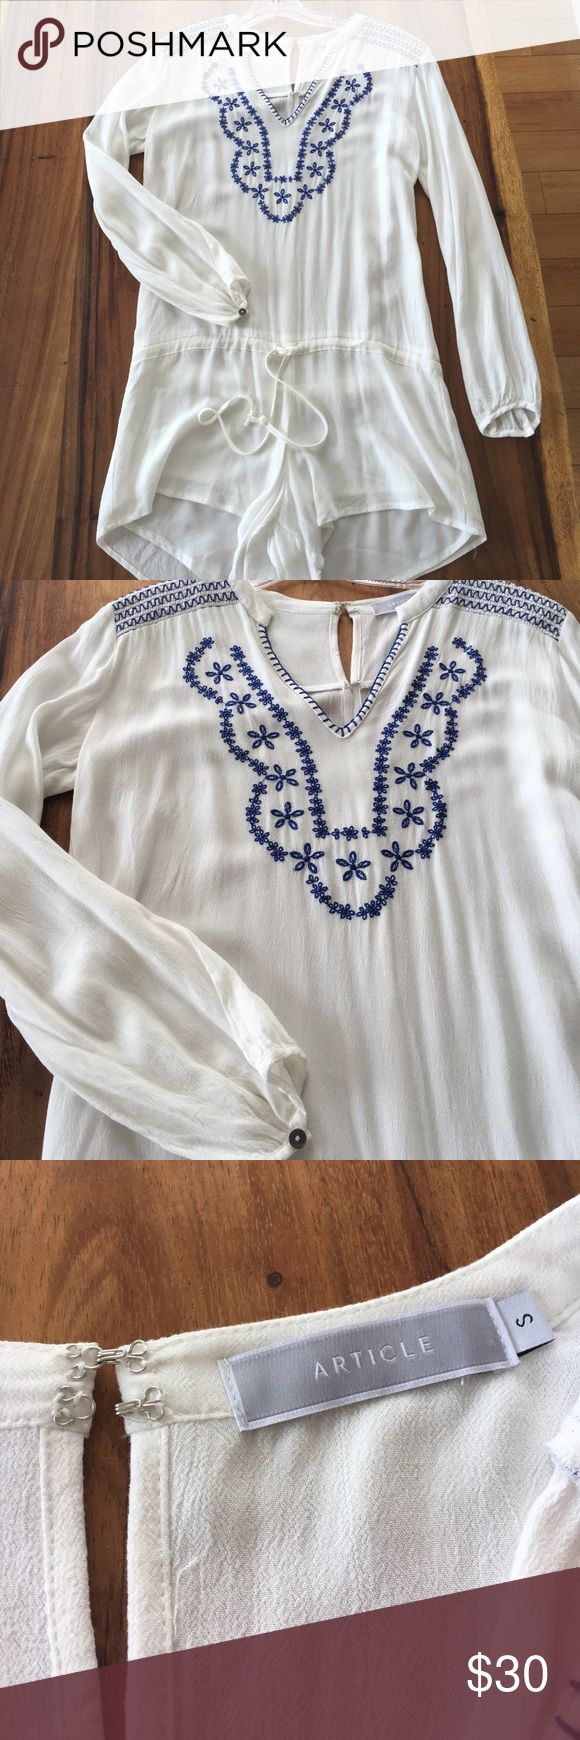 """Perfect Summer Vacay Romper 🌞🛥 Adorable romper, perfect for vacation or beach party, in lovely soft crepe cotton-linen material and w/ pretty blue embroidery on front. Hook and eye closure in back and drawstring short. The short part is lined so no see-thru issues. Never worn, zero flaws, and in perfect condition. I purchased this from a boutique in LA and never wore it, and now it's too small for me. Size S (can fit XS); fits size 2 best. Measures 28.5"""" from shoulder to bottom hem of…"""